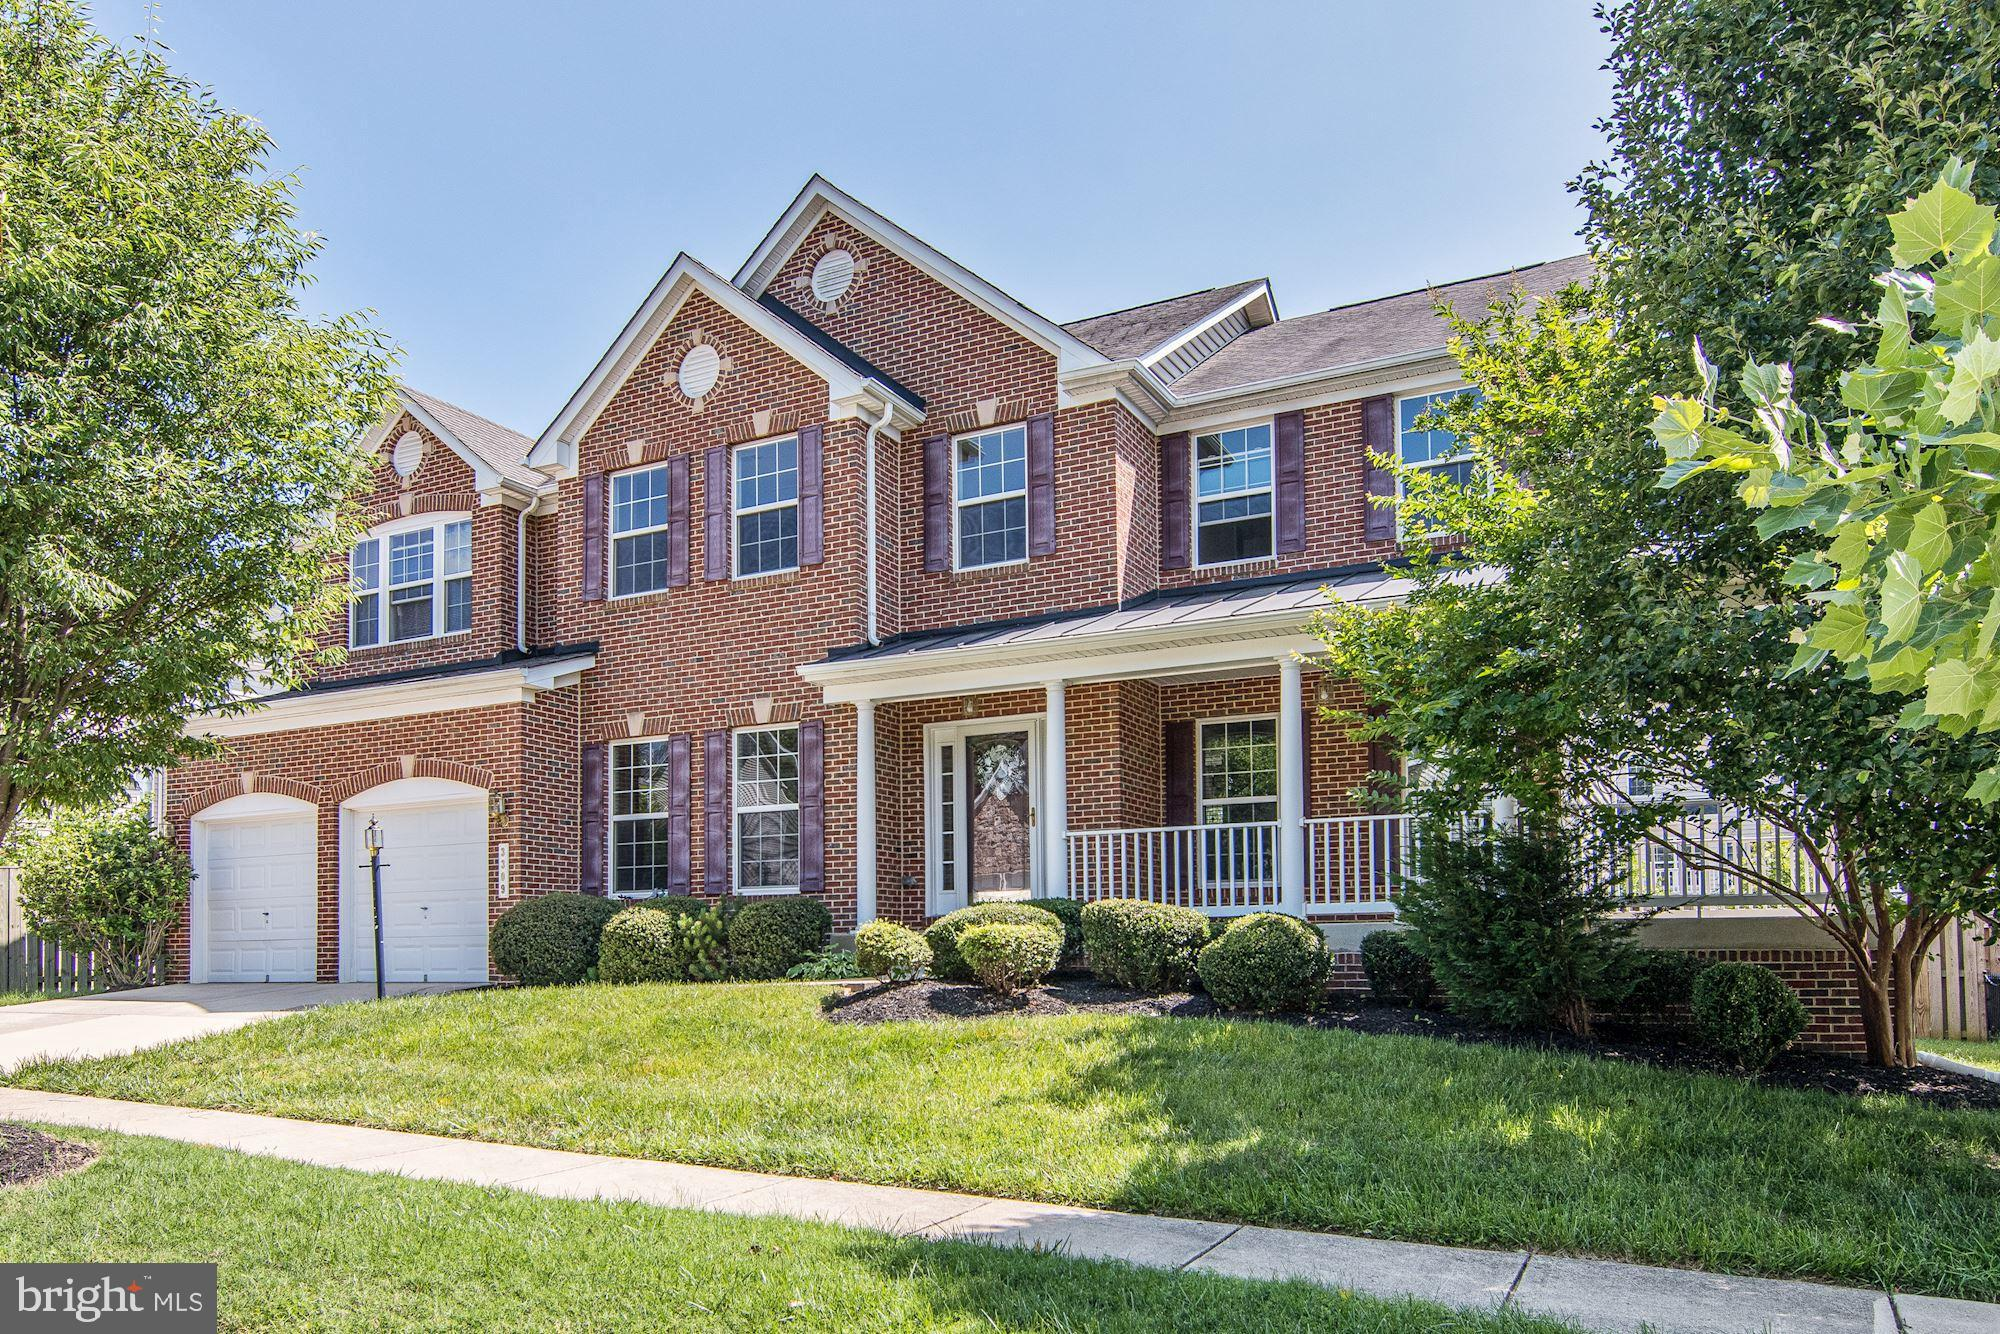 3309 WENDELLS LANE, ACCOKEEK, MD 20607